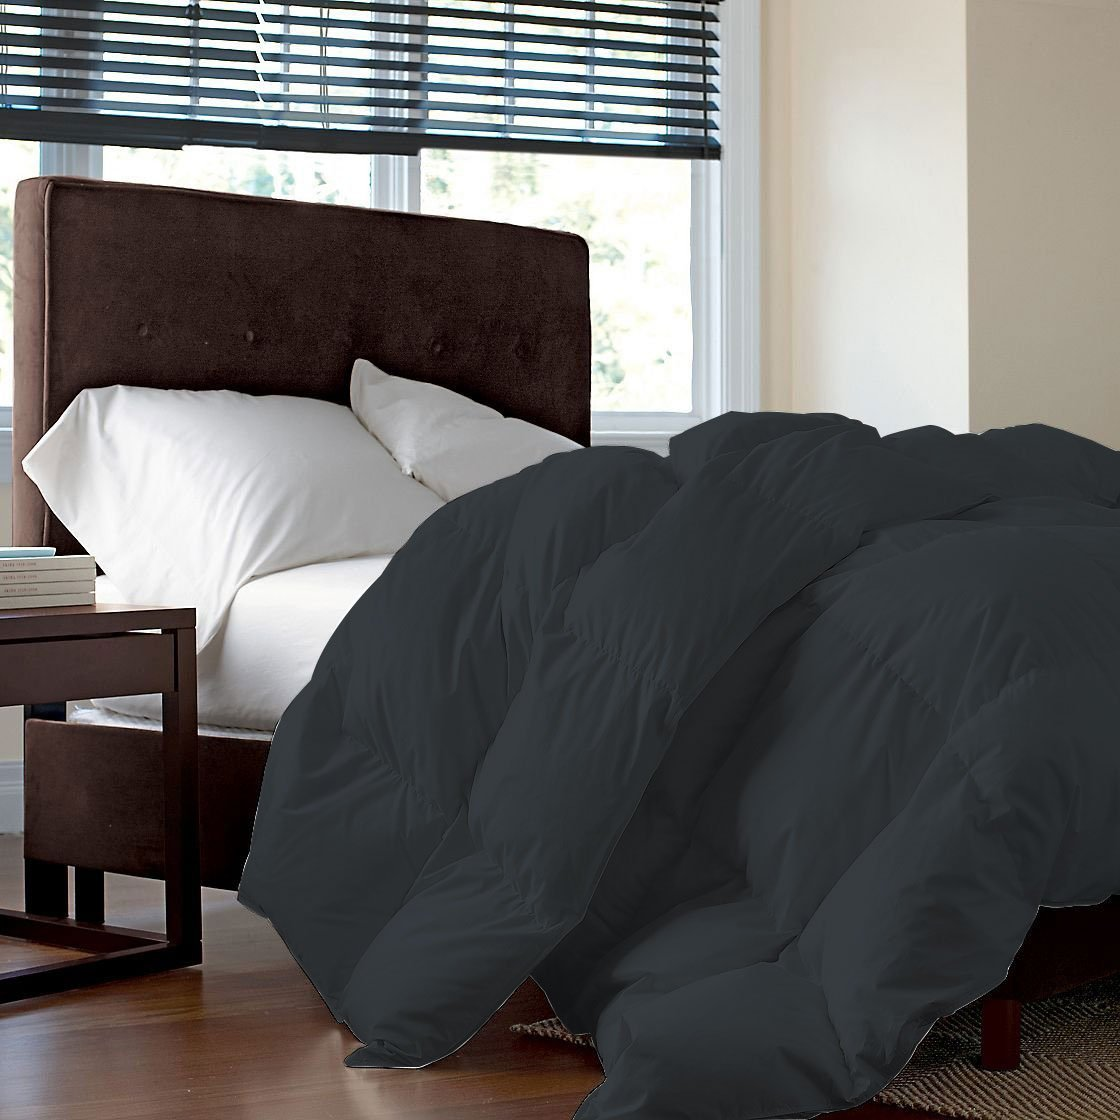 600 TC, GOTS Certified, Organic Cotton, Luxurious and Warm Comforter/Quilt (300 GSM), Fluffy and Cozy Microfiber Filling Duvet King/Cal-King, Elephant Grey